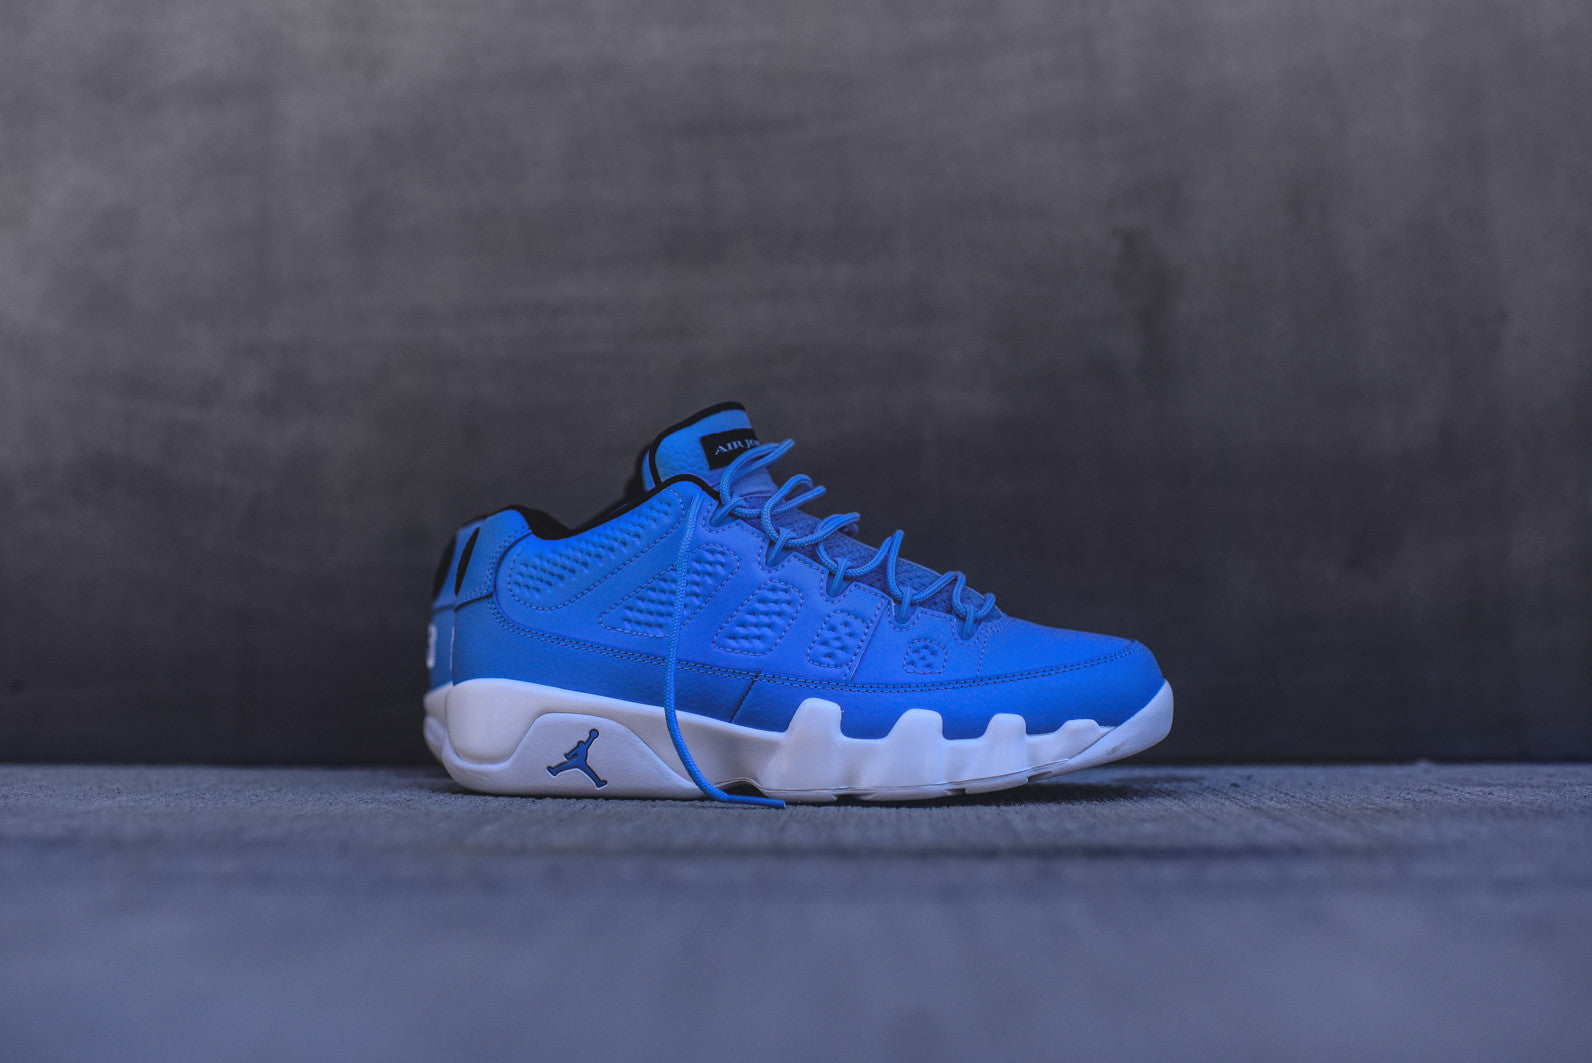 Nike Air Jordan 9 Retro Low - University Blue